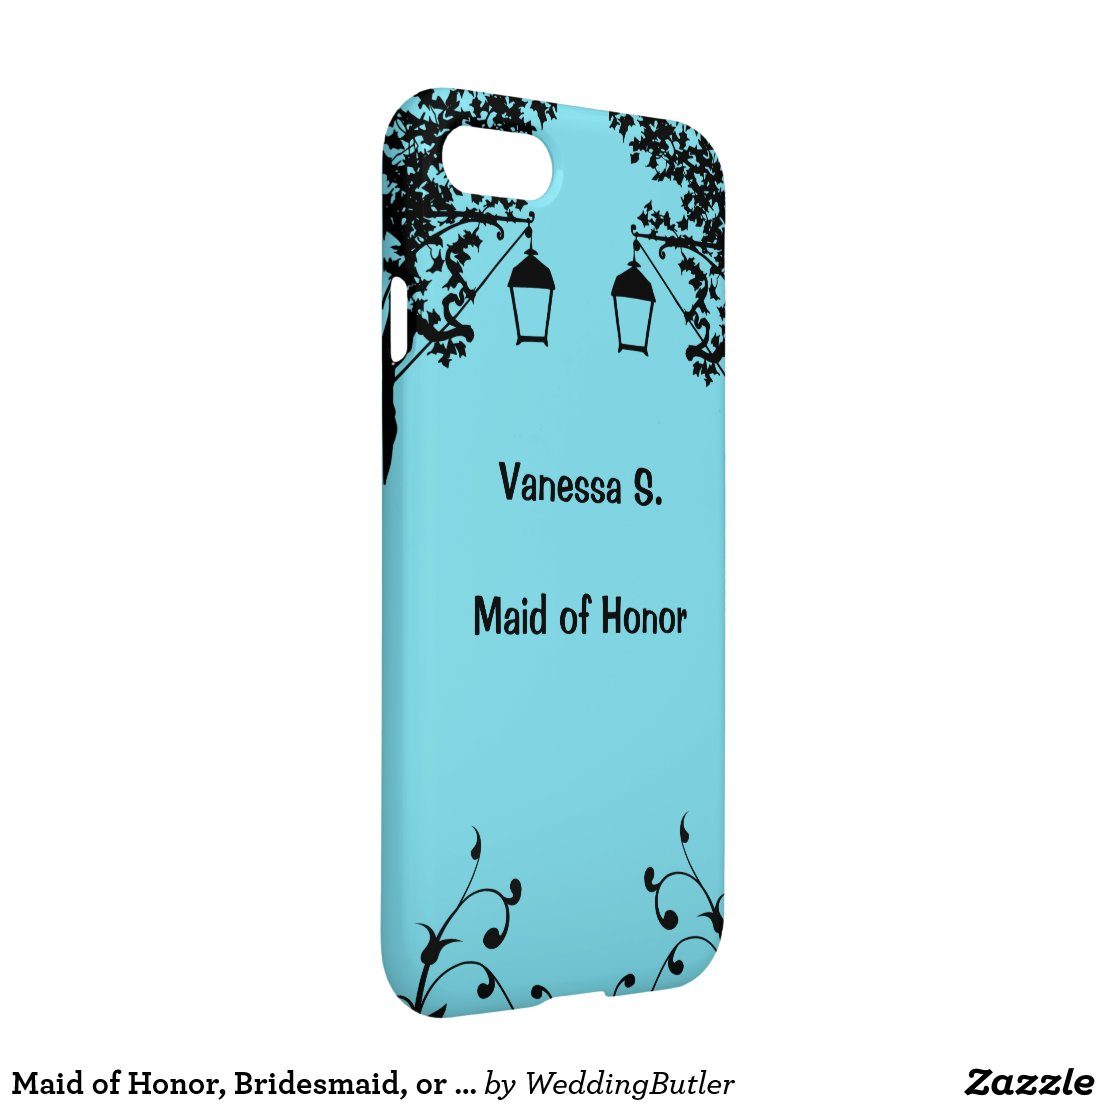 Maid of Honor, Bridesmaid, or Bride's Case